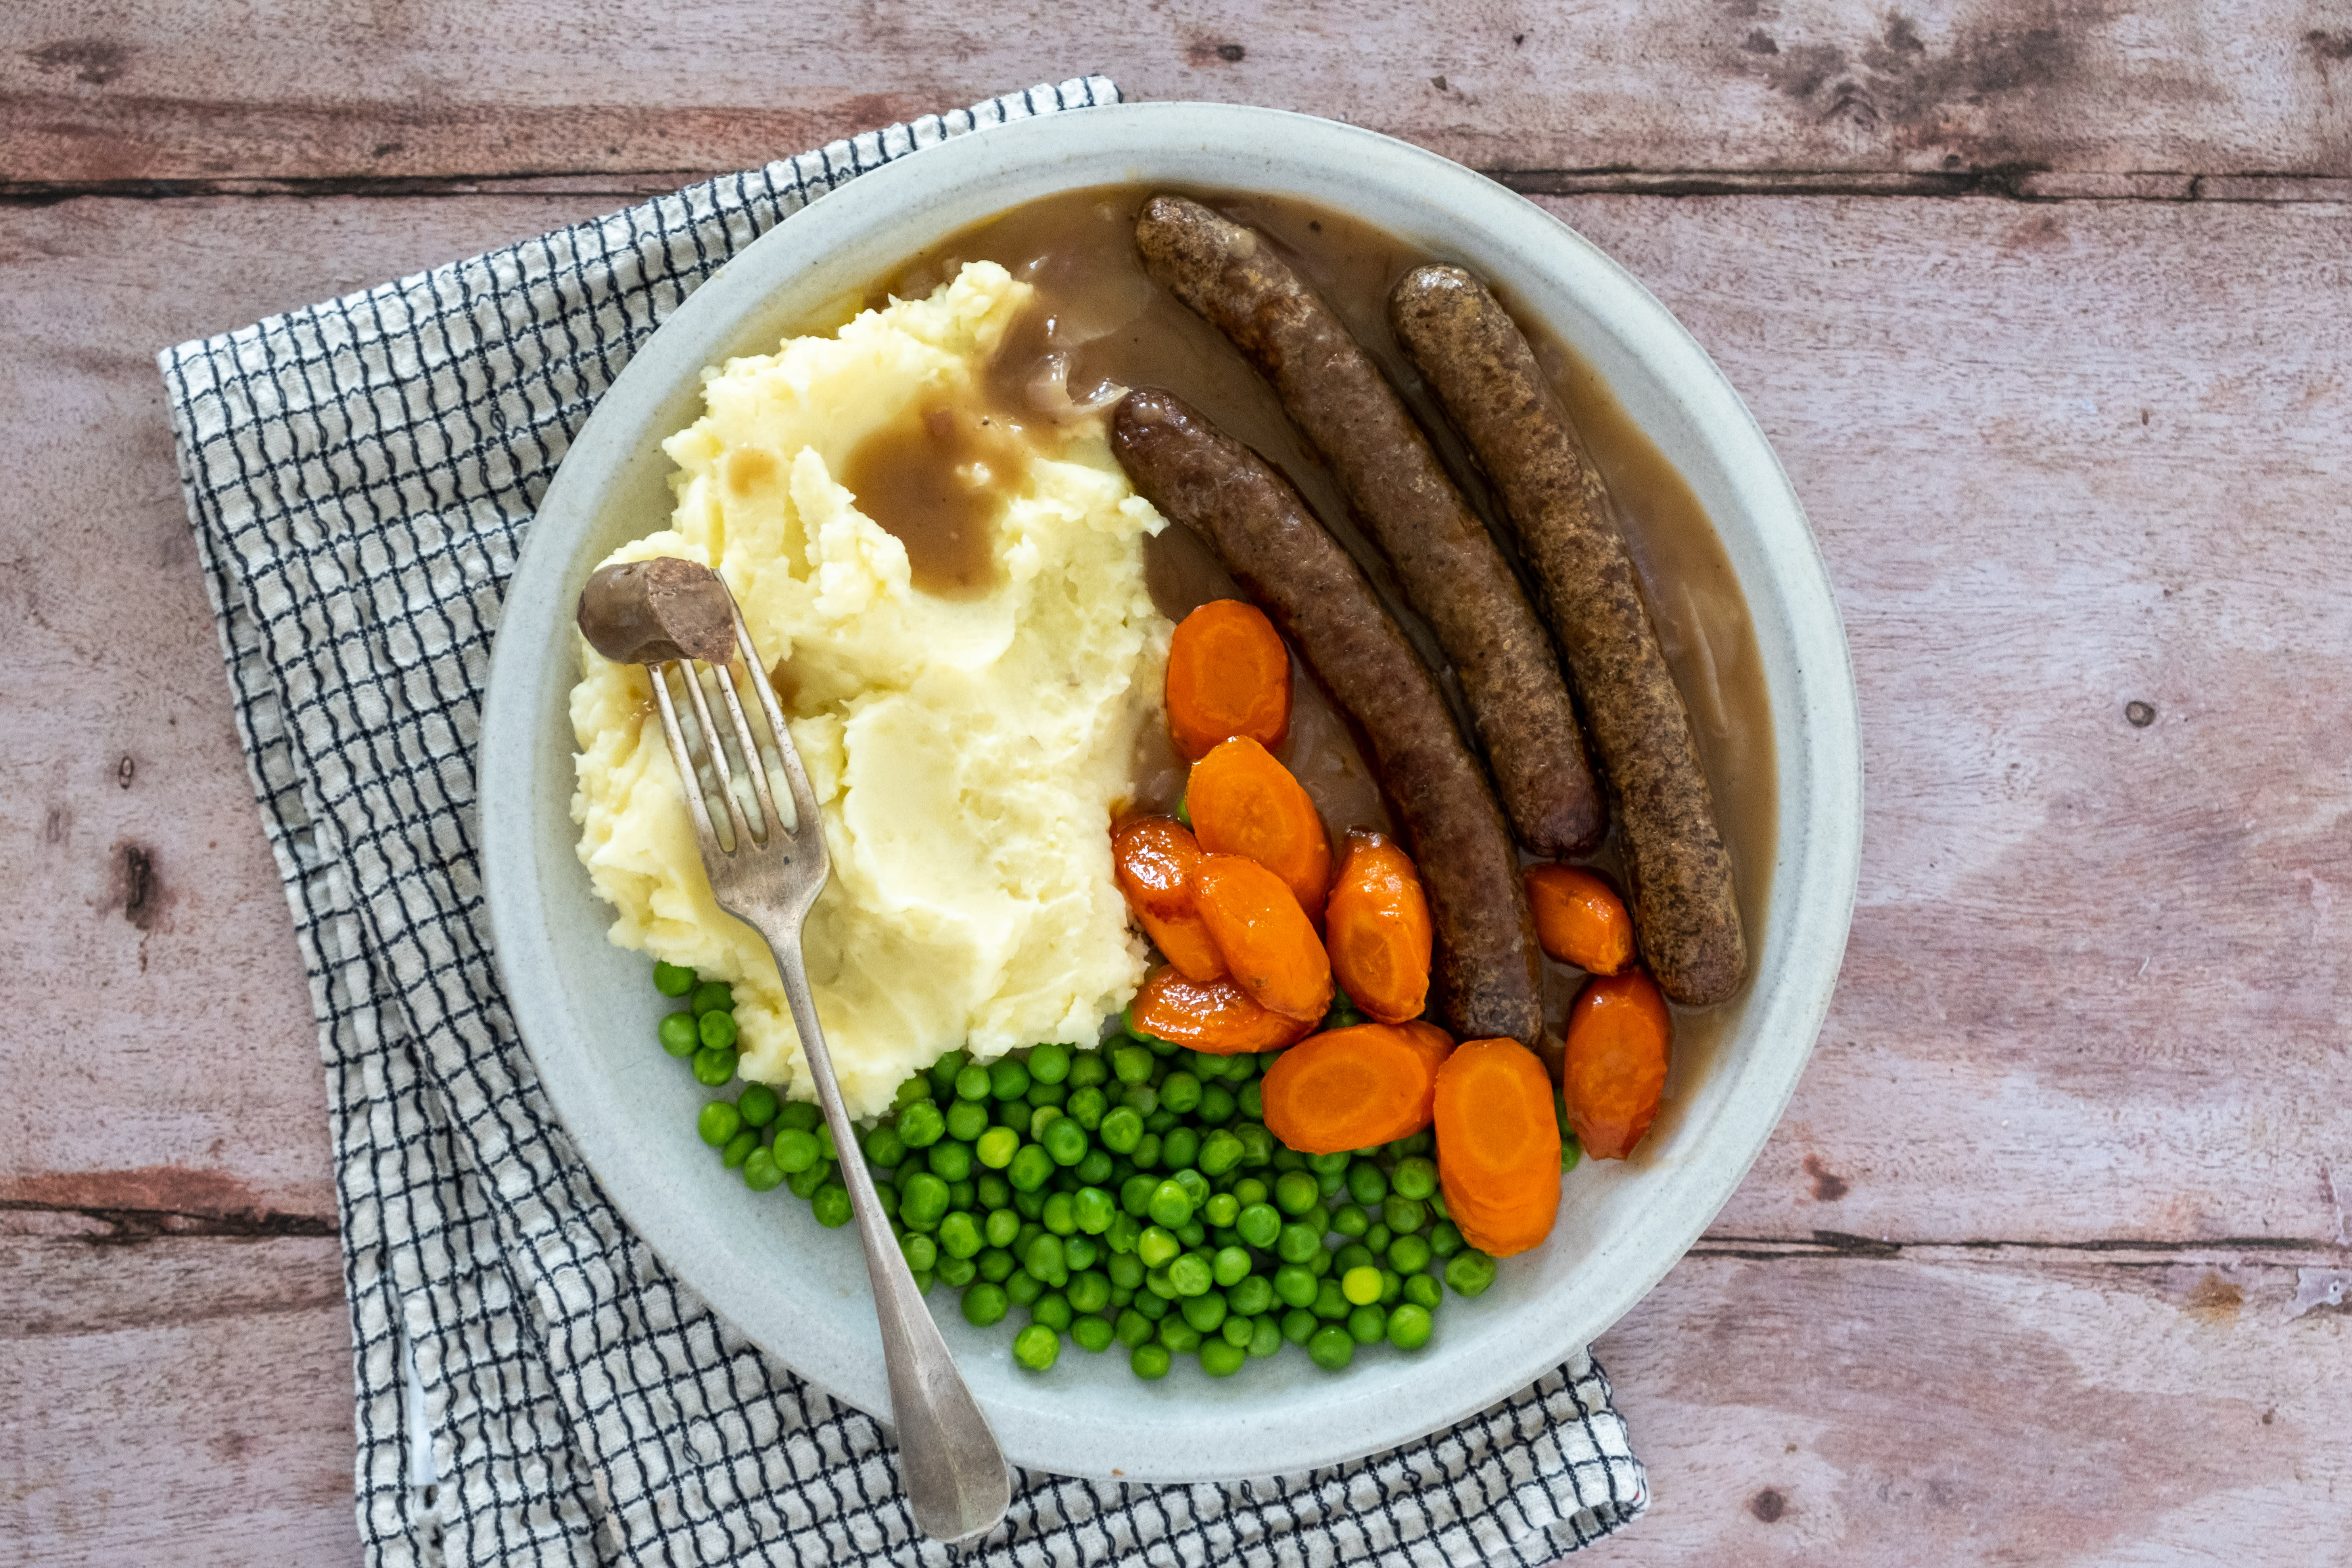 Bangers and Mash, Beef Sausages with Creamy Potatoes and Onion Gravy